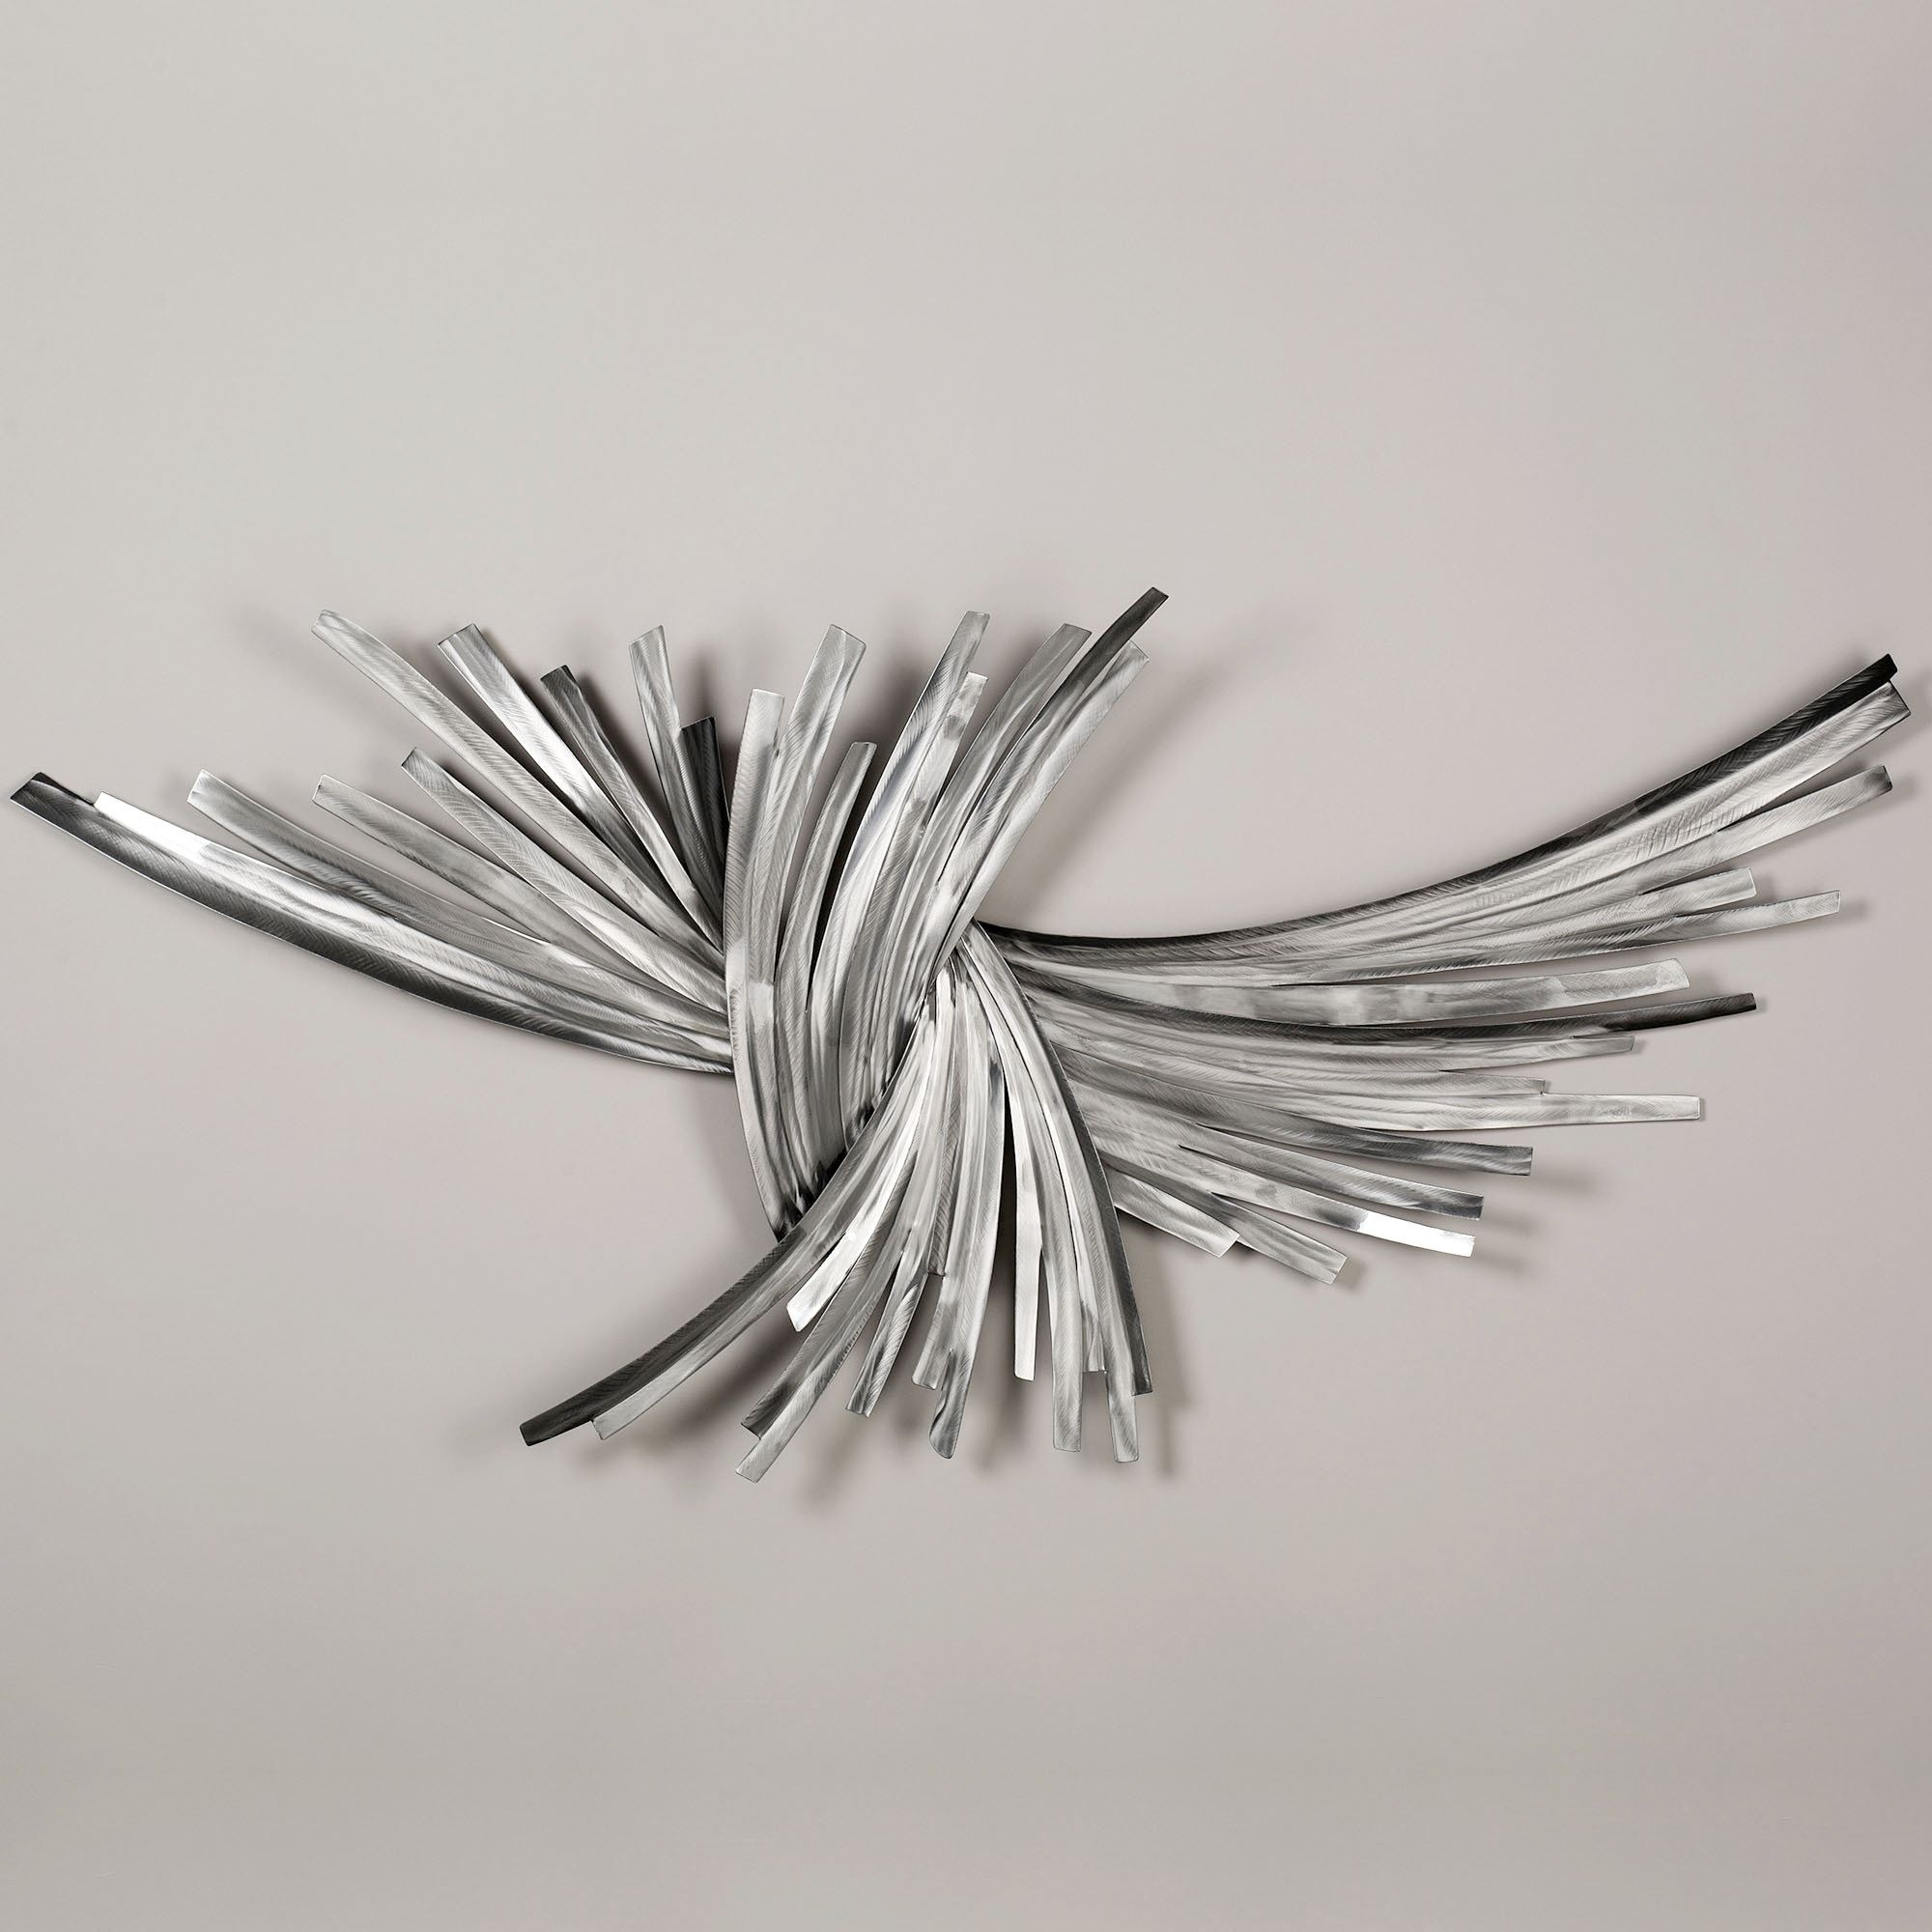 Fashionable Contemporary Metal Wall Art Sculpture In Fantastic Wall Art Touch Plus Class Metal Wall Art Diamante Mirror (View 3 of 15)